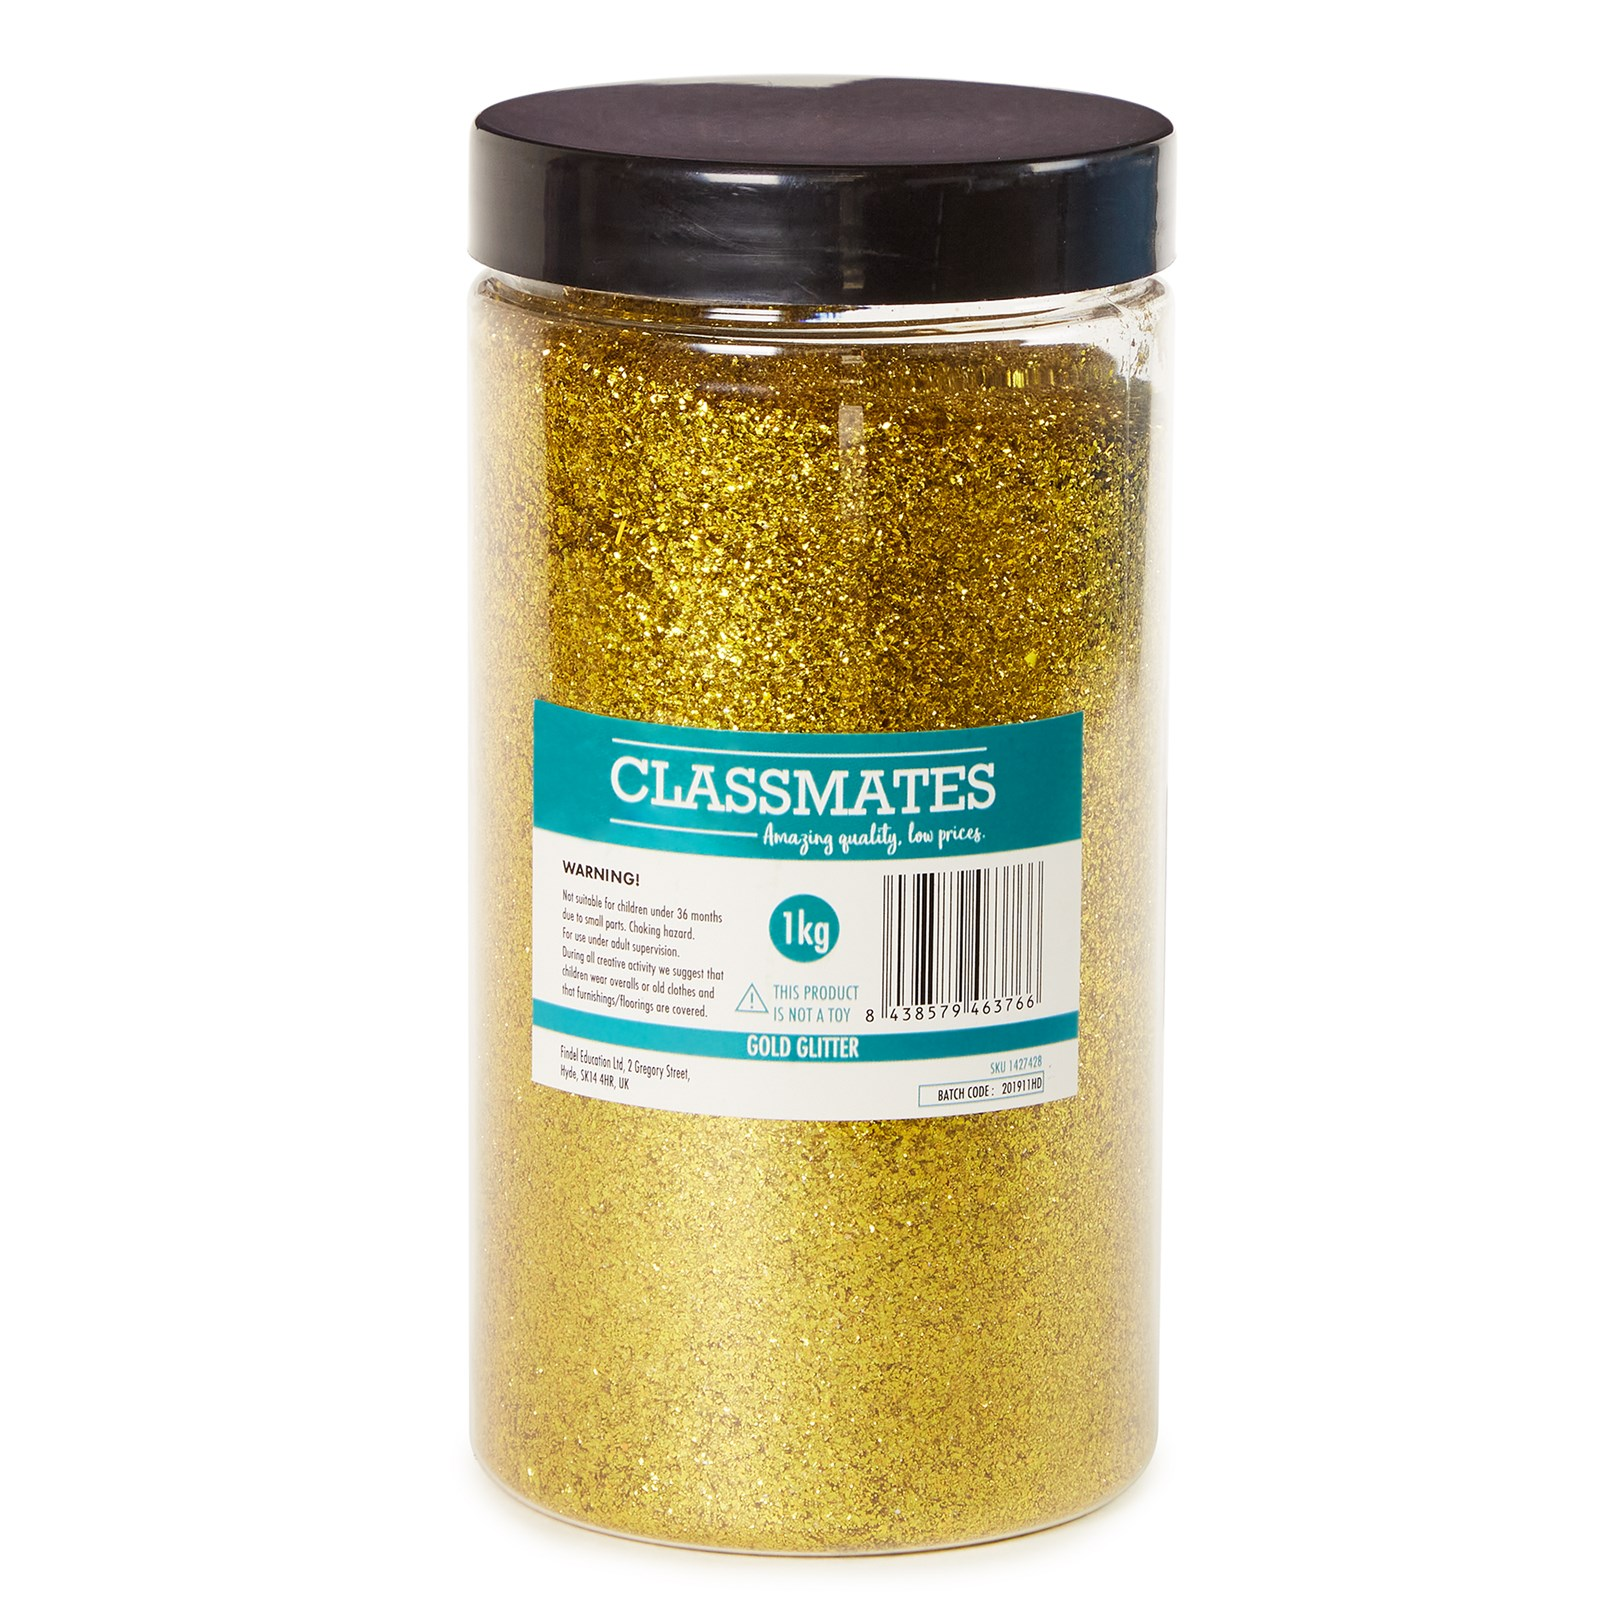 Classmates 1kg Glitter Tub with Scoop - Gold